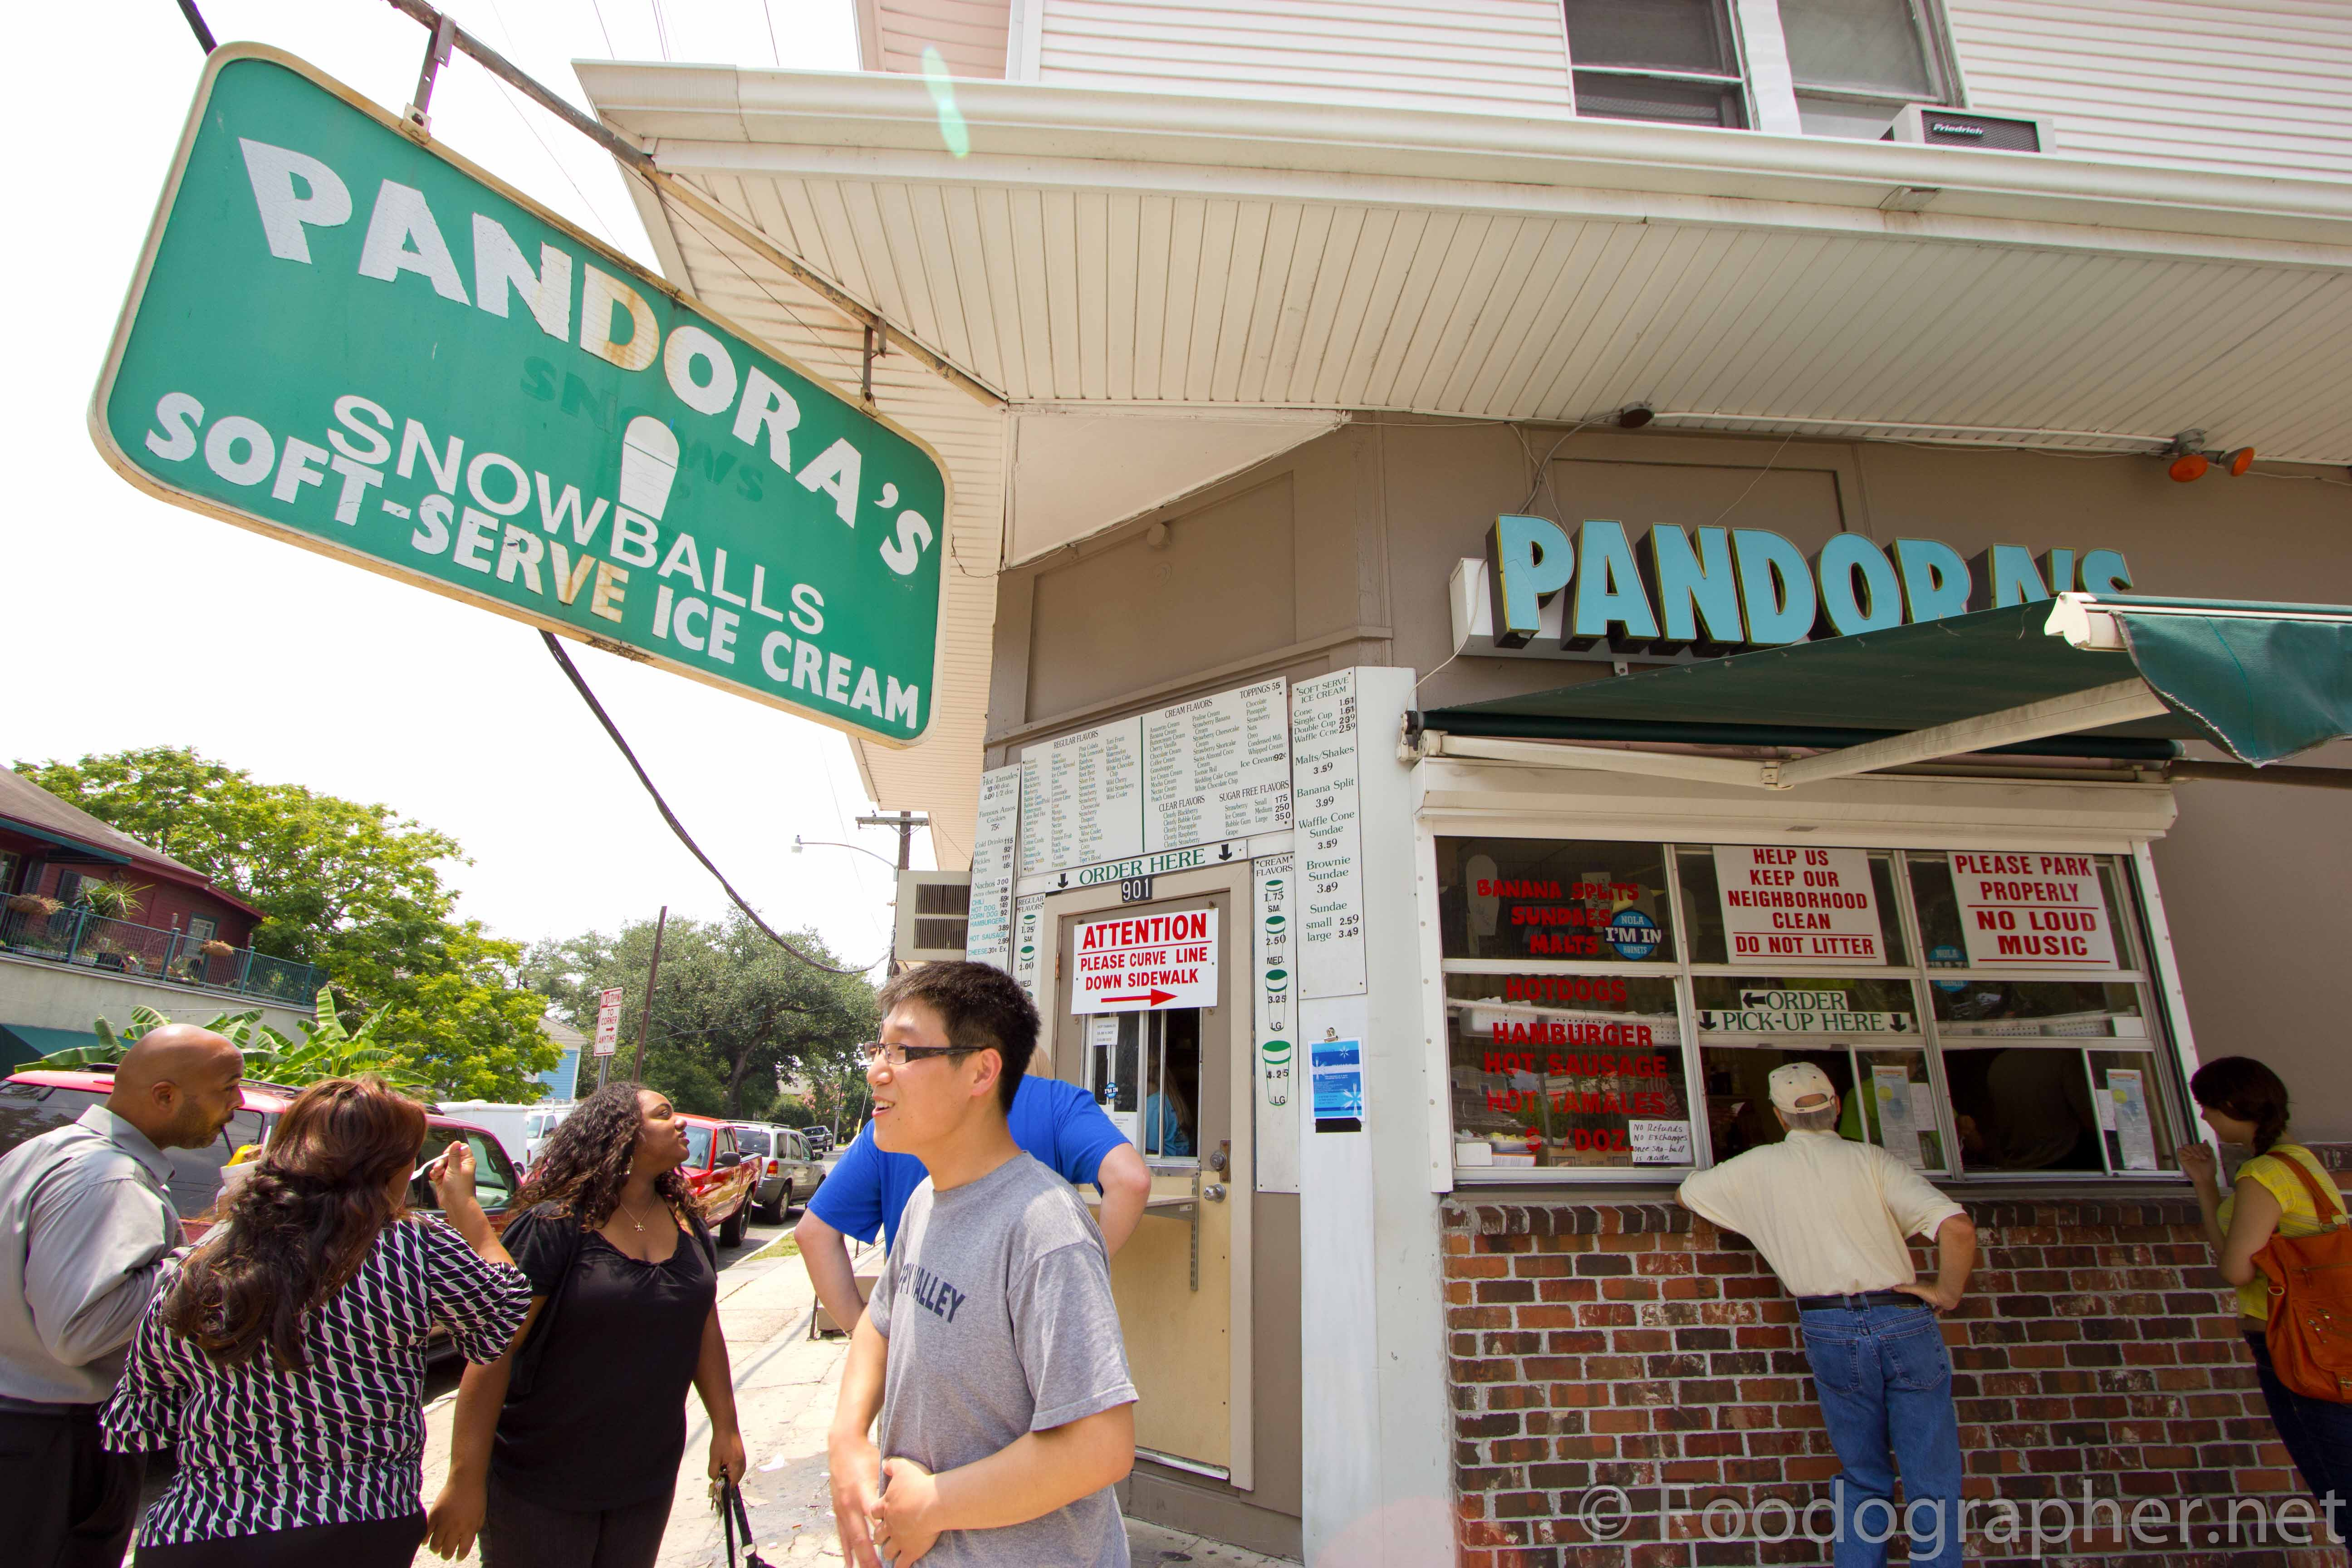 Pandora Snowball in New Orleans, LA | The Foodographer